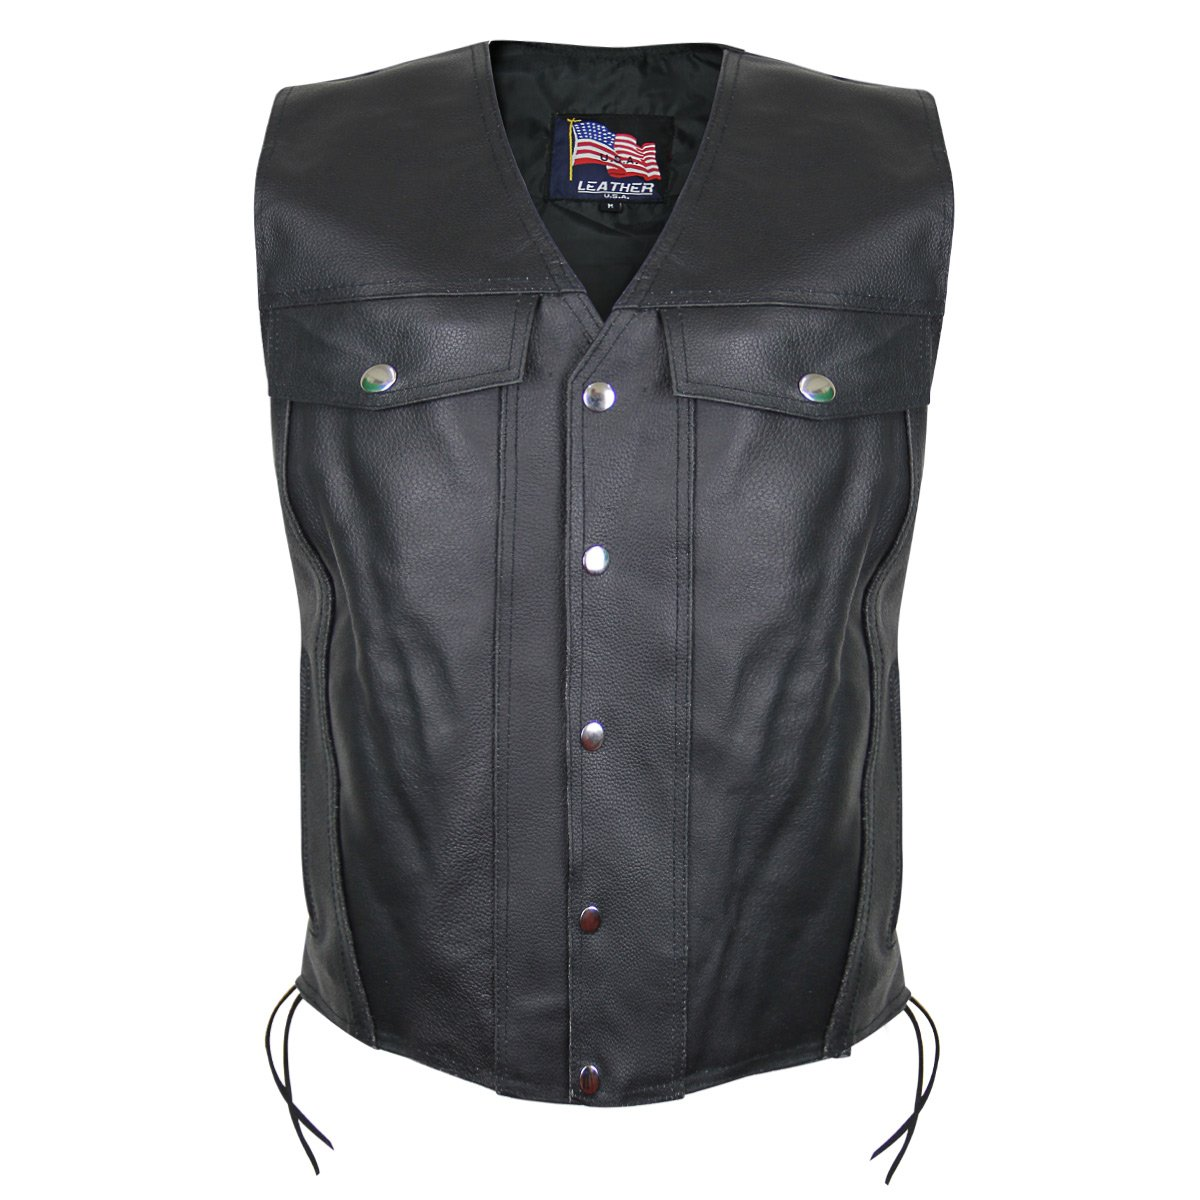 USA 1207 Leather Mens Undercover Gun Pocket Vest - 3X-Large